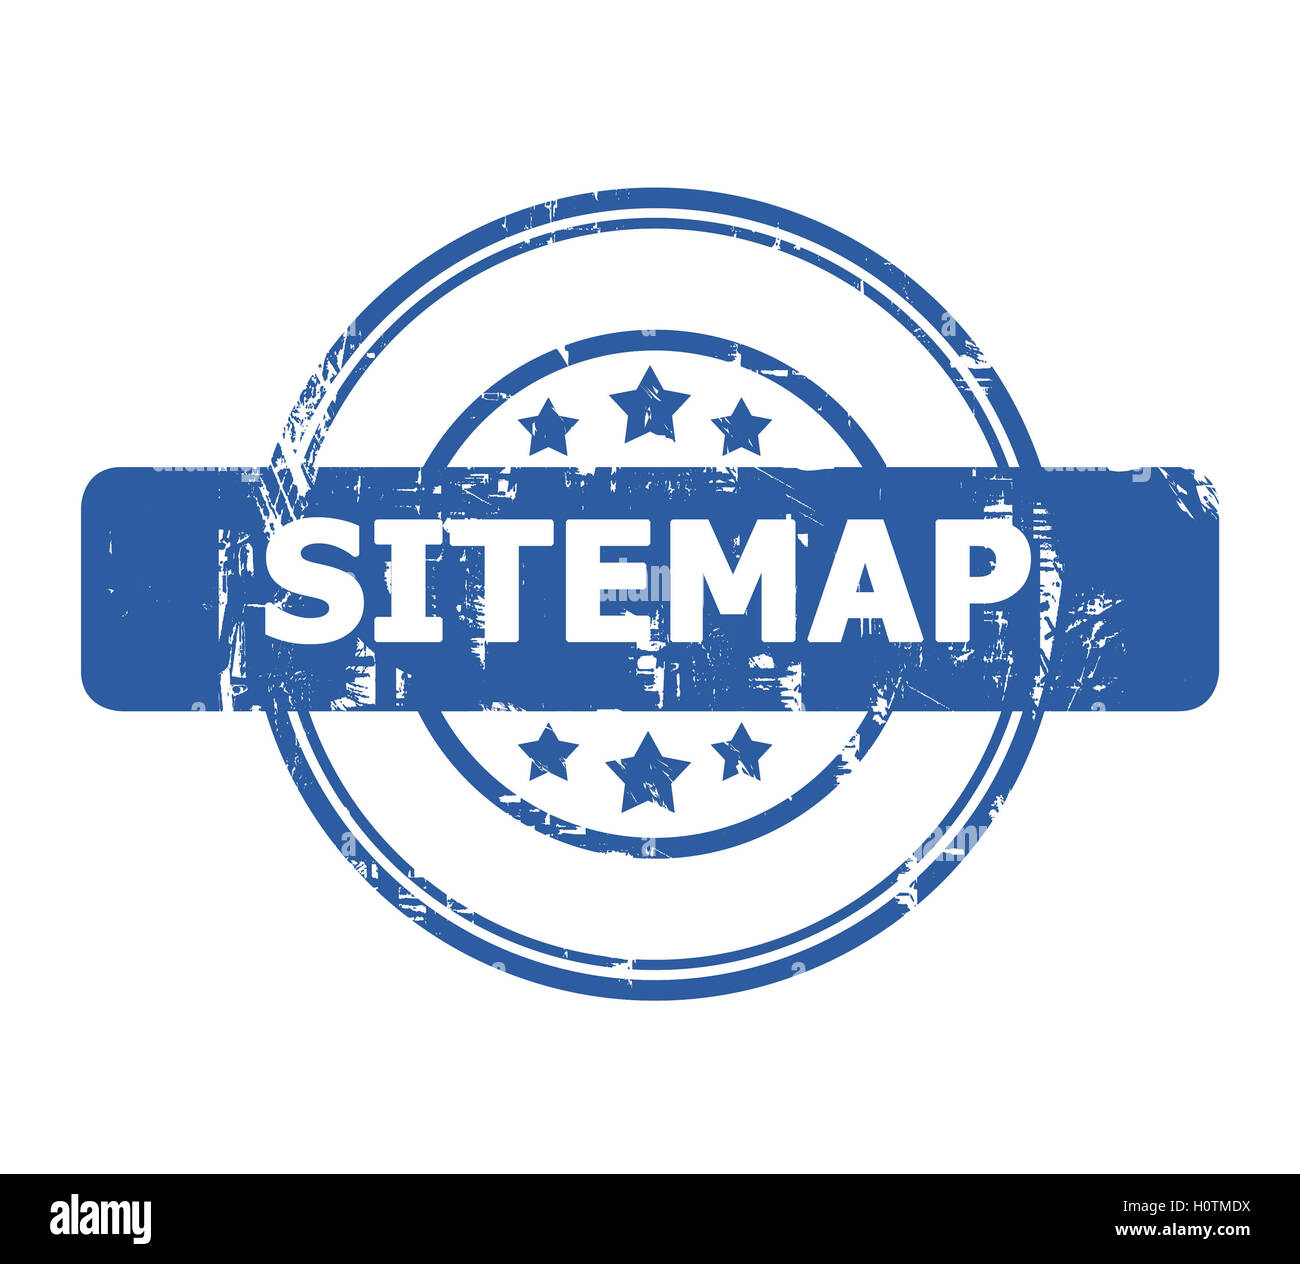 Sitemap Stamp with stars isolated on a white background. - Stock Image